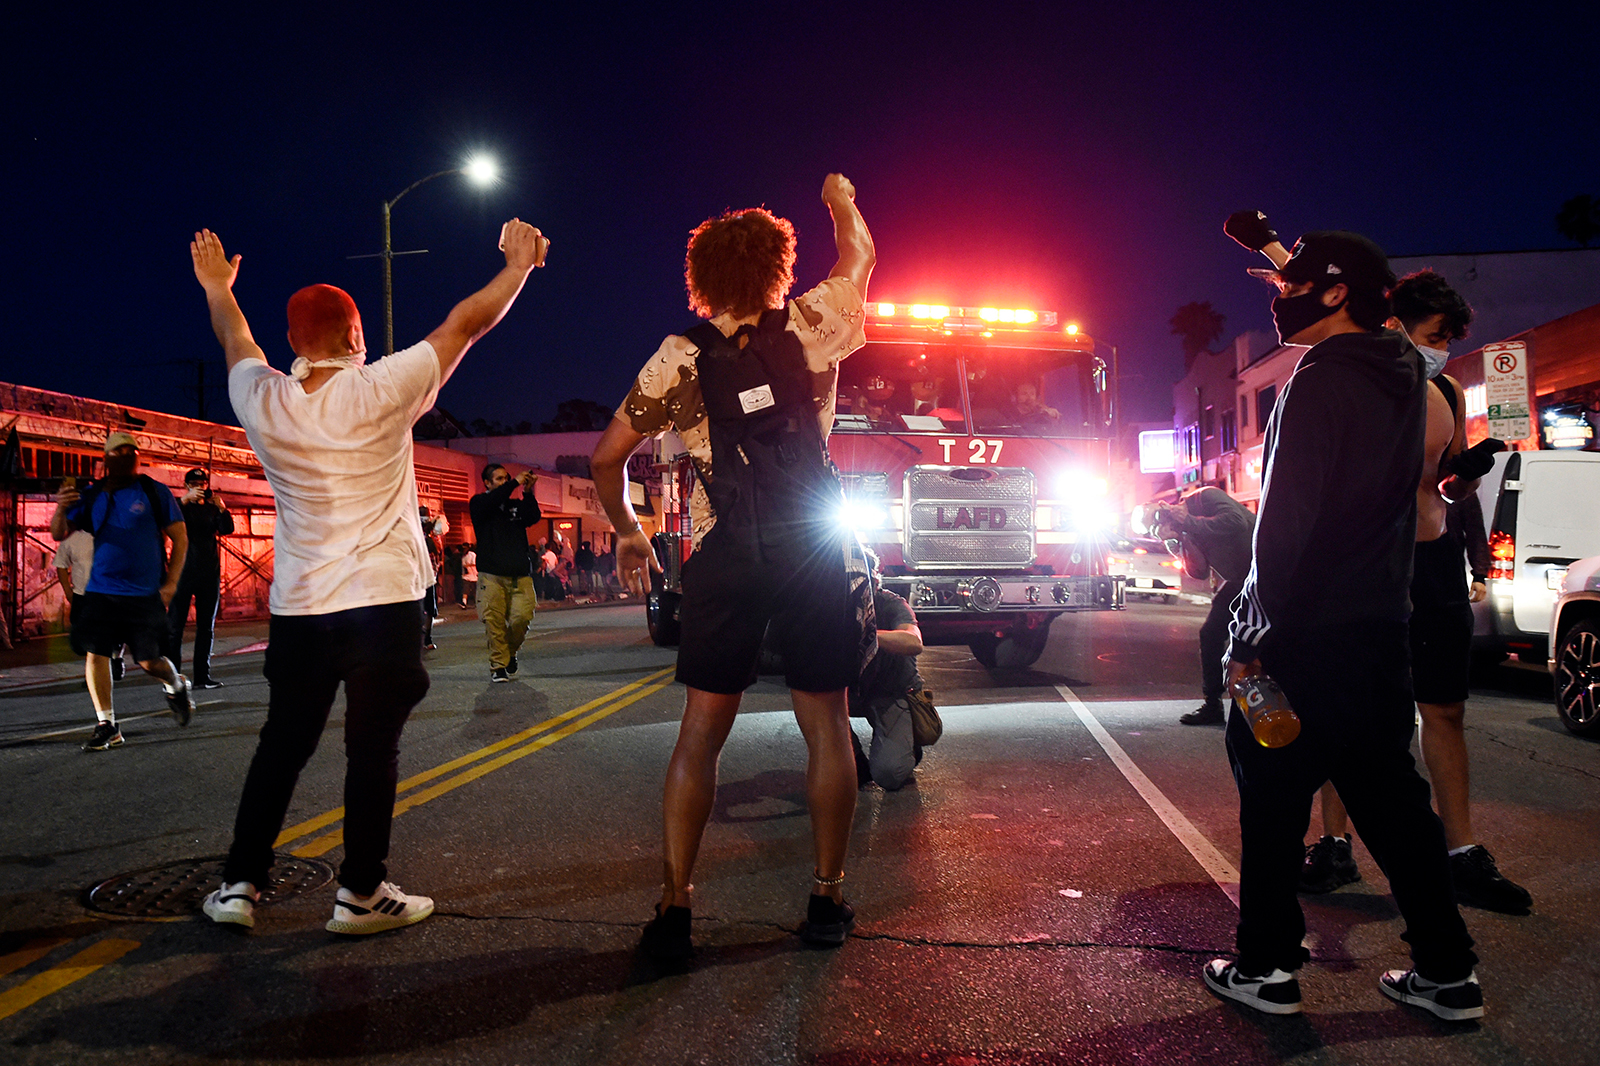 Demonstrators block the path of a Los Angeles Fire Department truck on Melrose Avenue on Saturday, May 30.